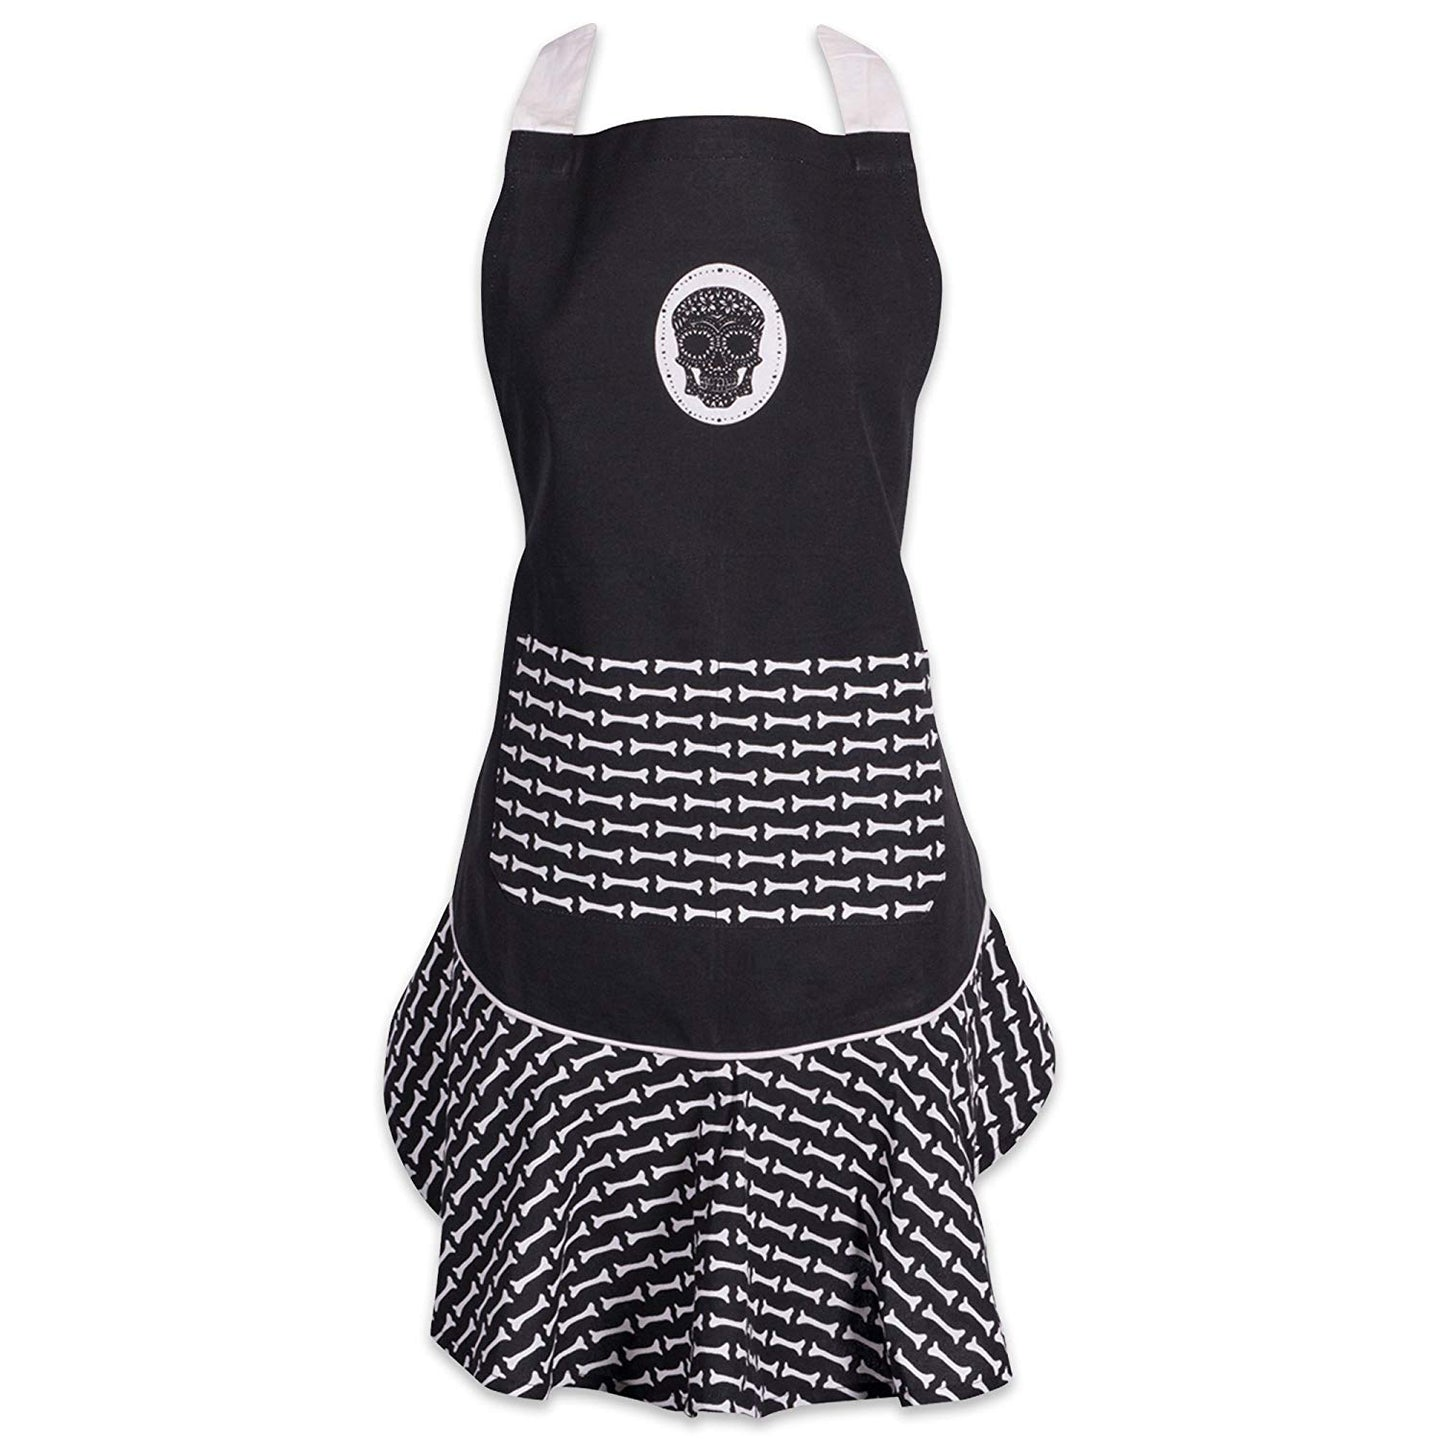 Dia De Los Muertos Ruffle Kitchen Apron with pocket - the-southern-magnolia-too